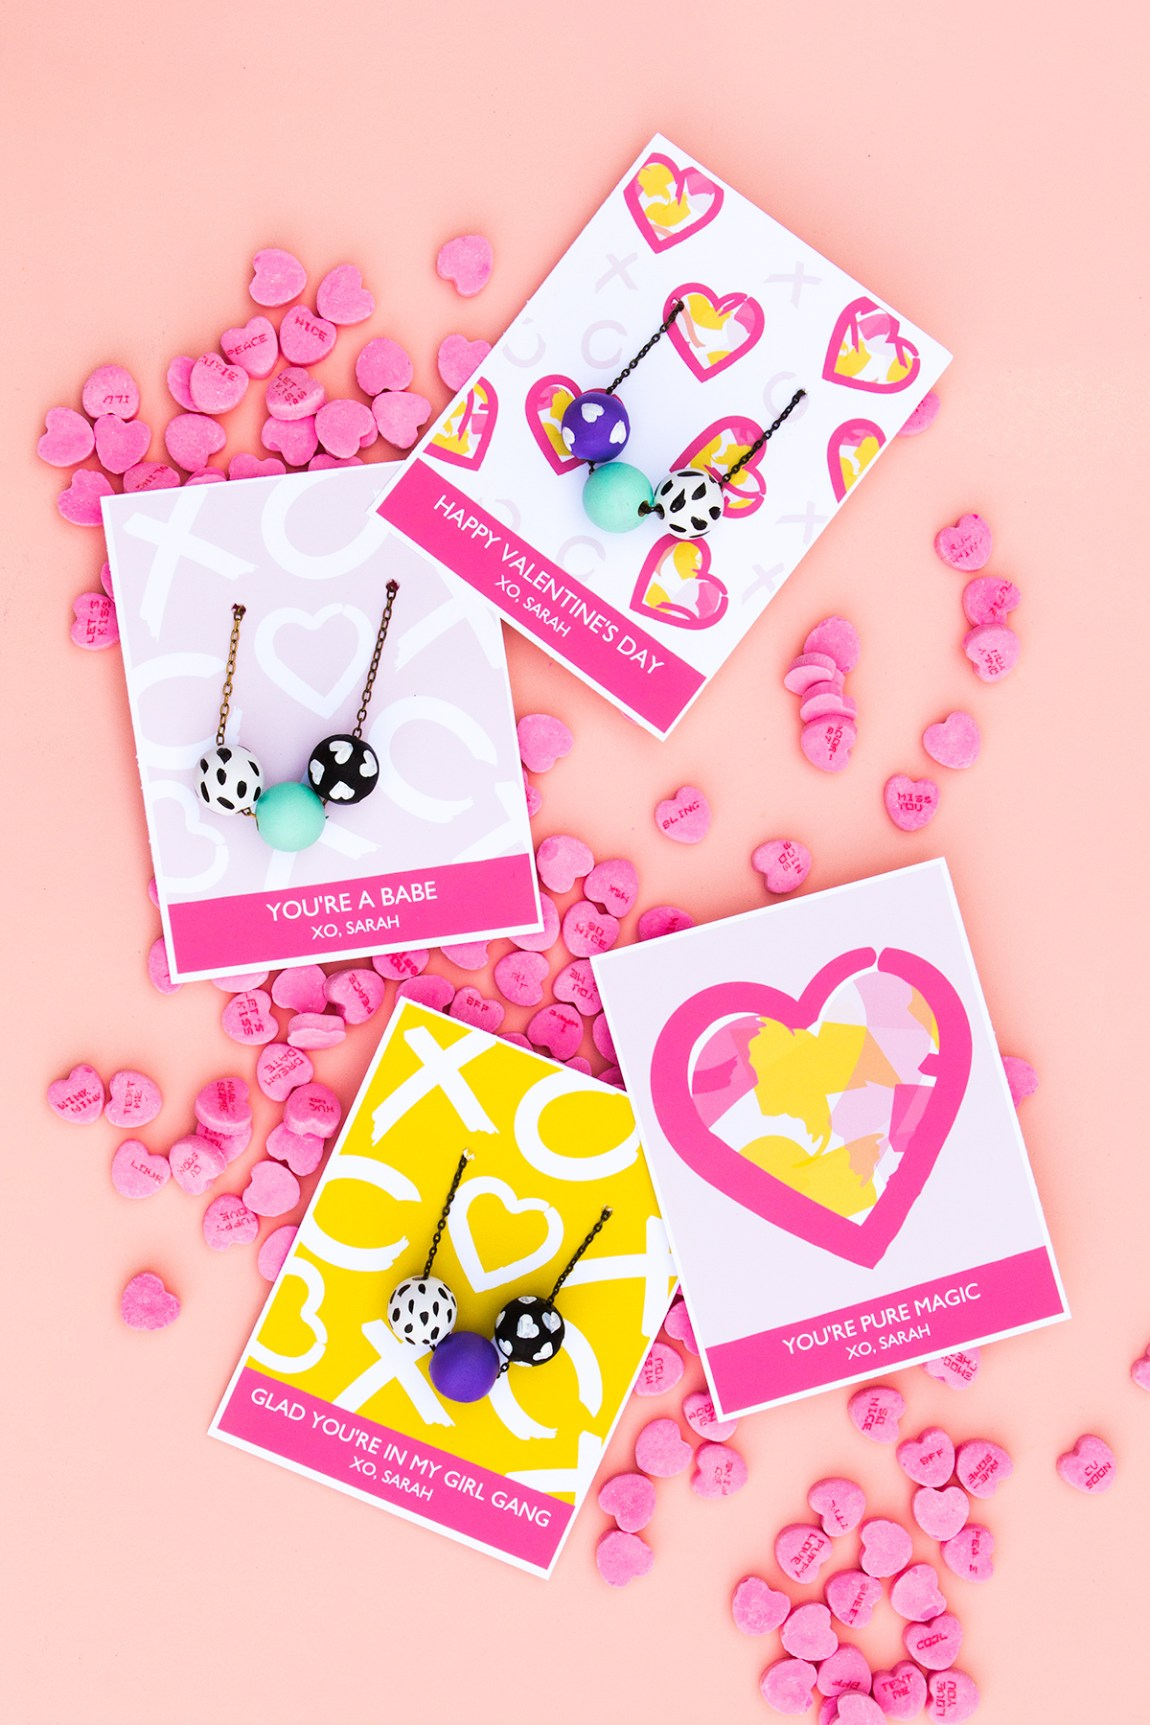 DIY a pretty necklace for your BFF and display it on these adorable free printable valentines day cards. The text is fully customizable too!